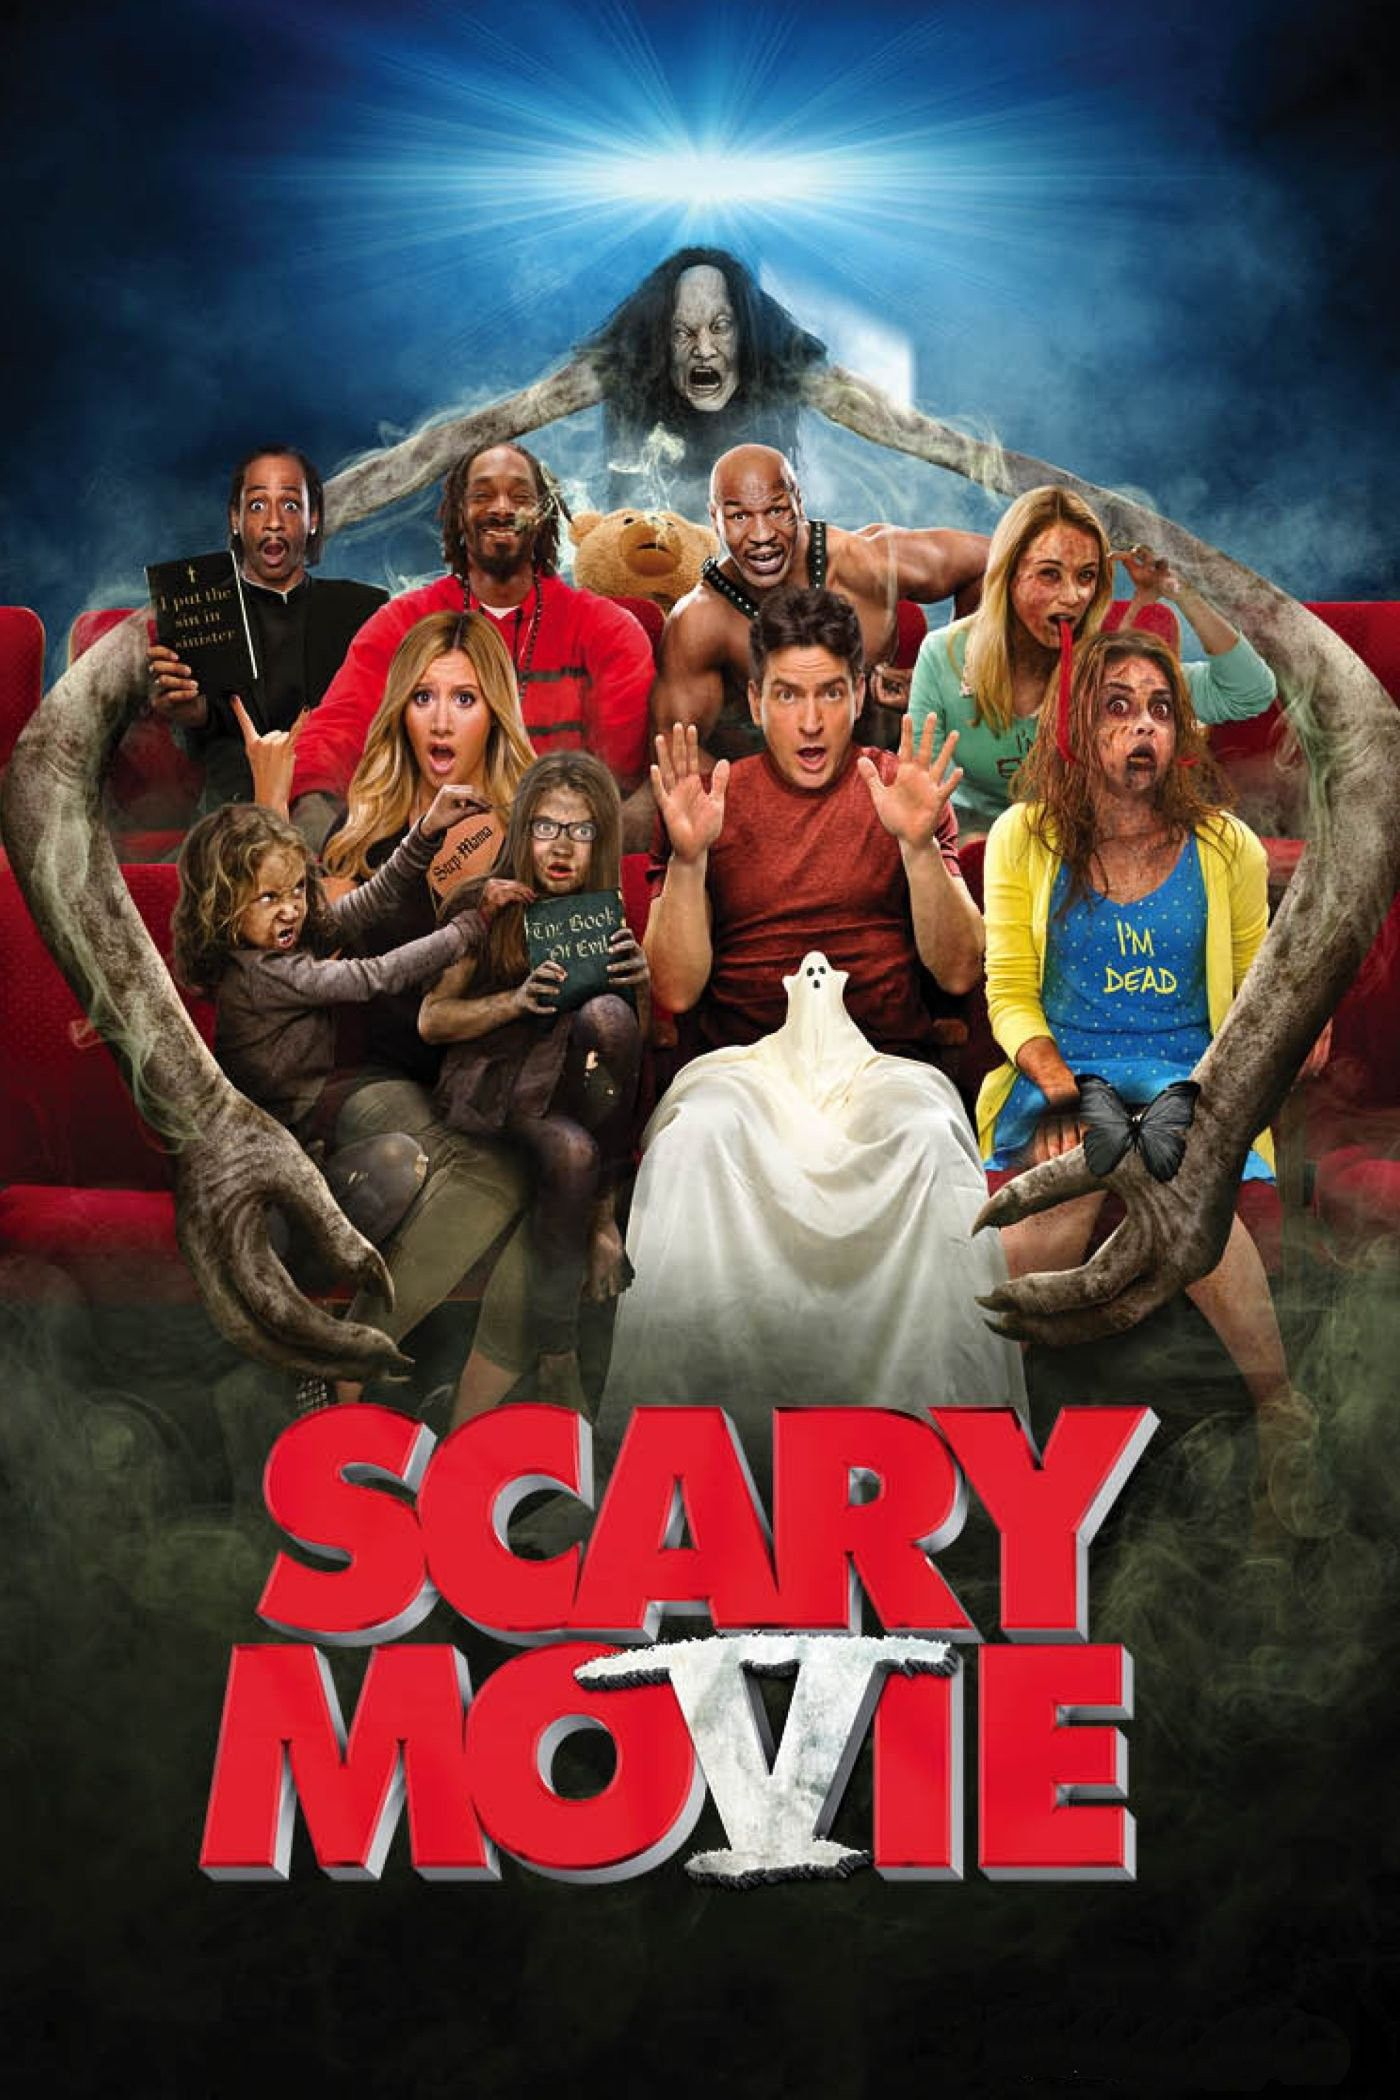 Scary Movie 5 2013 Filme Kostenlos Online Anschauen Scary Movie 5 Kostenlos Online Anschauen Scarymovie5 Scary Movie 5 Web Movie Full Movies Online Free